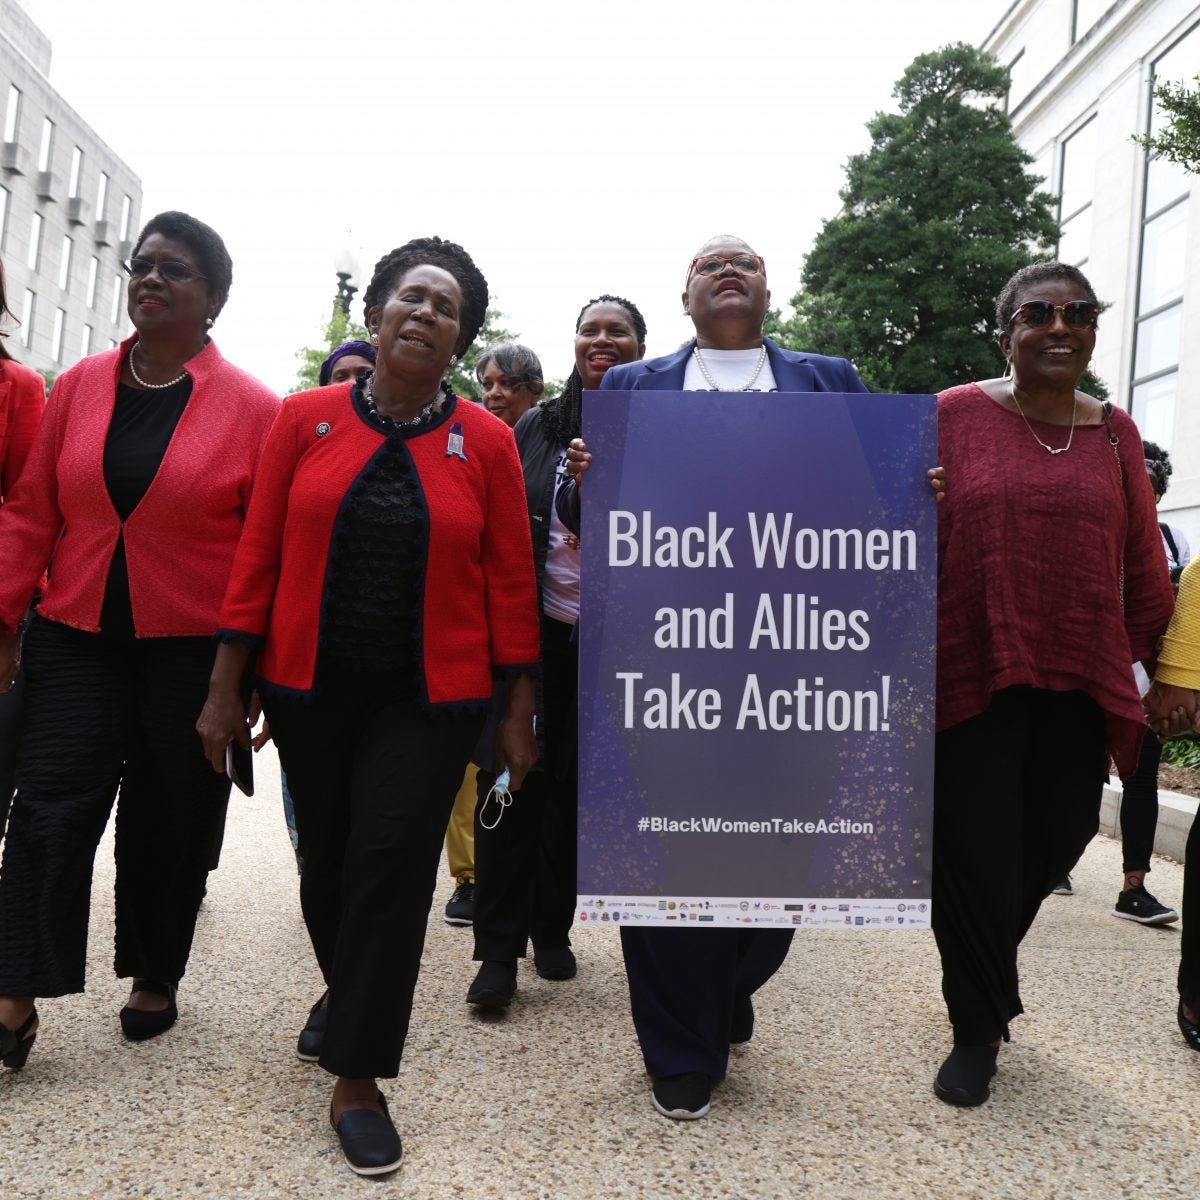 Congresswoman Sheila Jackson Lee, Fellow Black Women Leaders and Allies Arrested in Latest Voting Rights Protests